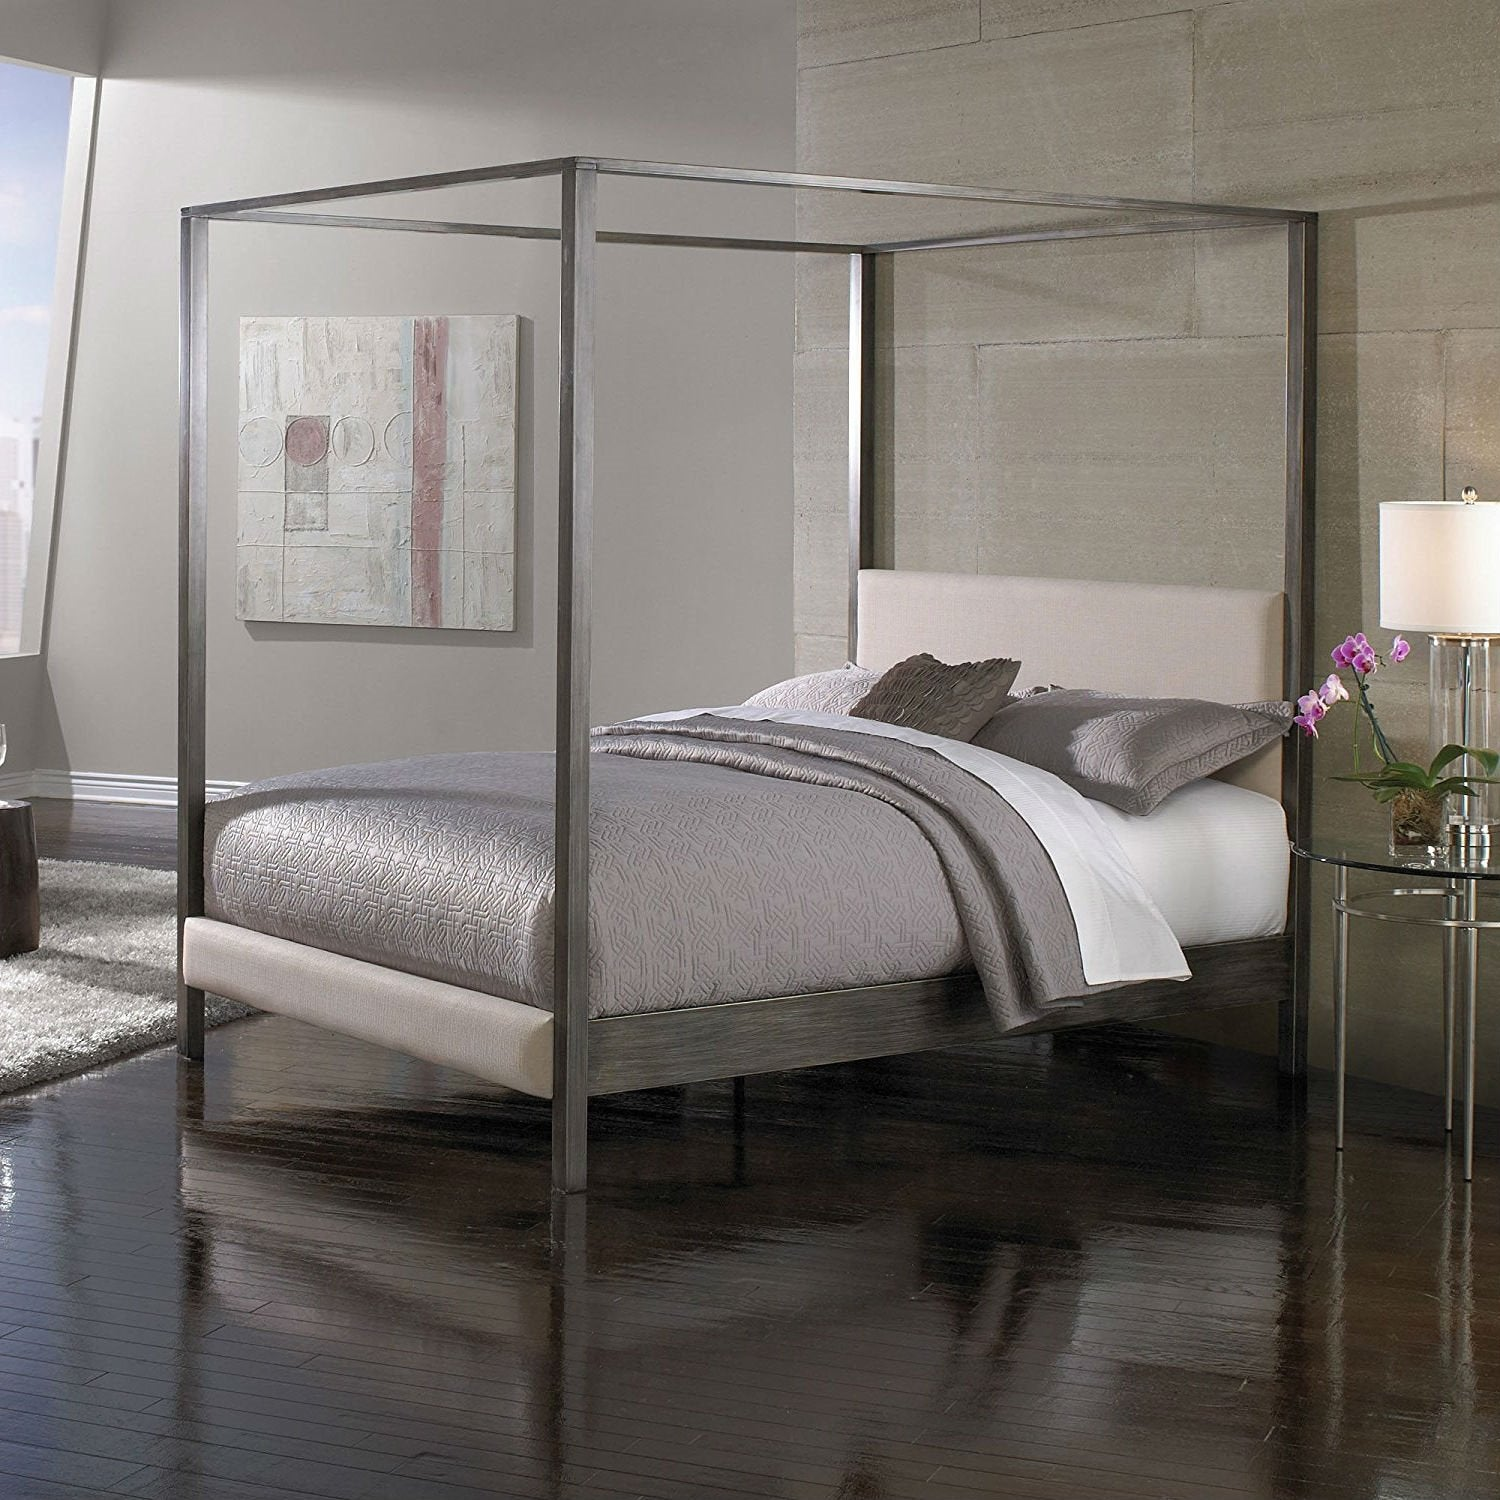 Picture of: King Size Upholstered Canopy Bed Frame With Wood Slats In Platinum Sla Shabbyliving